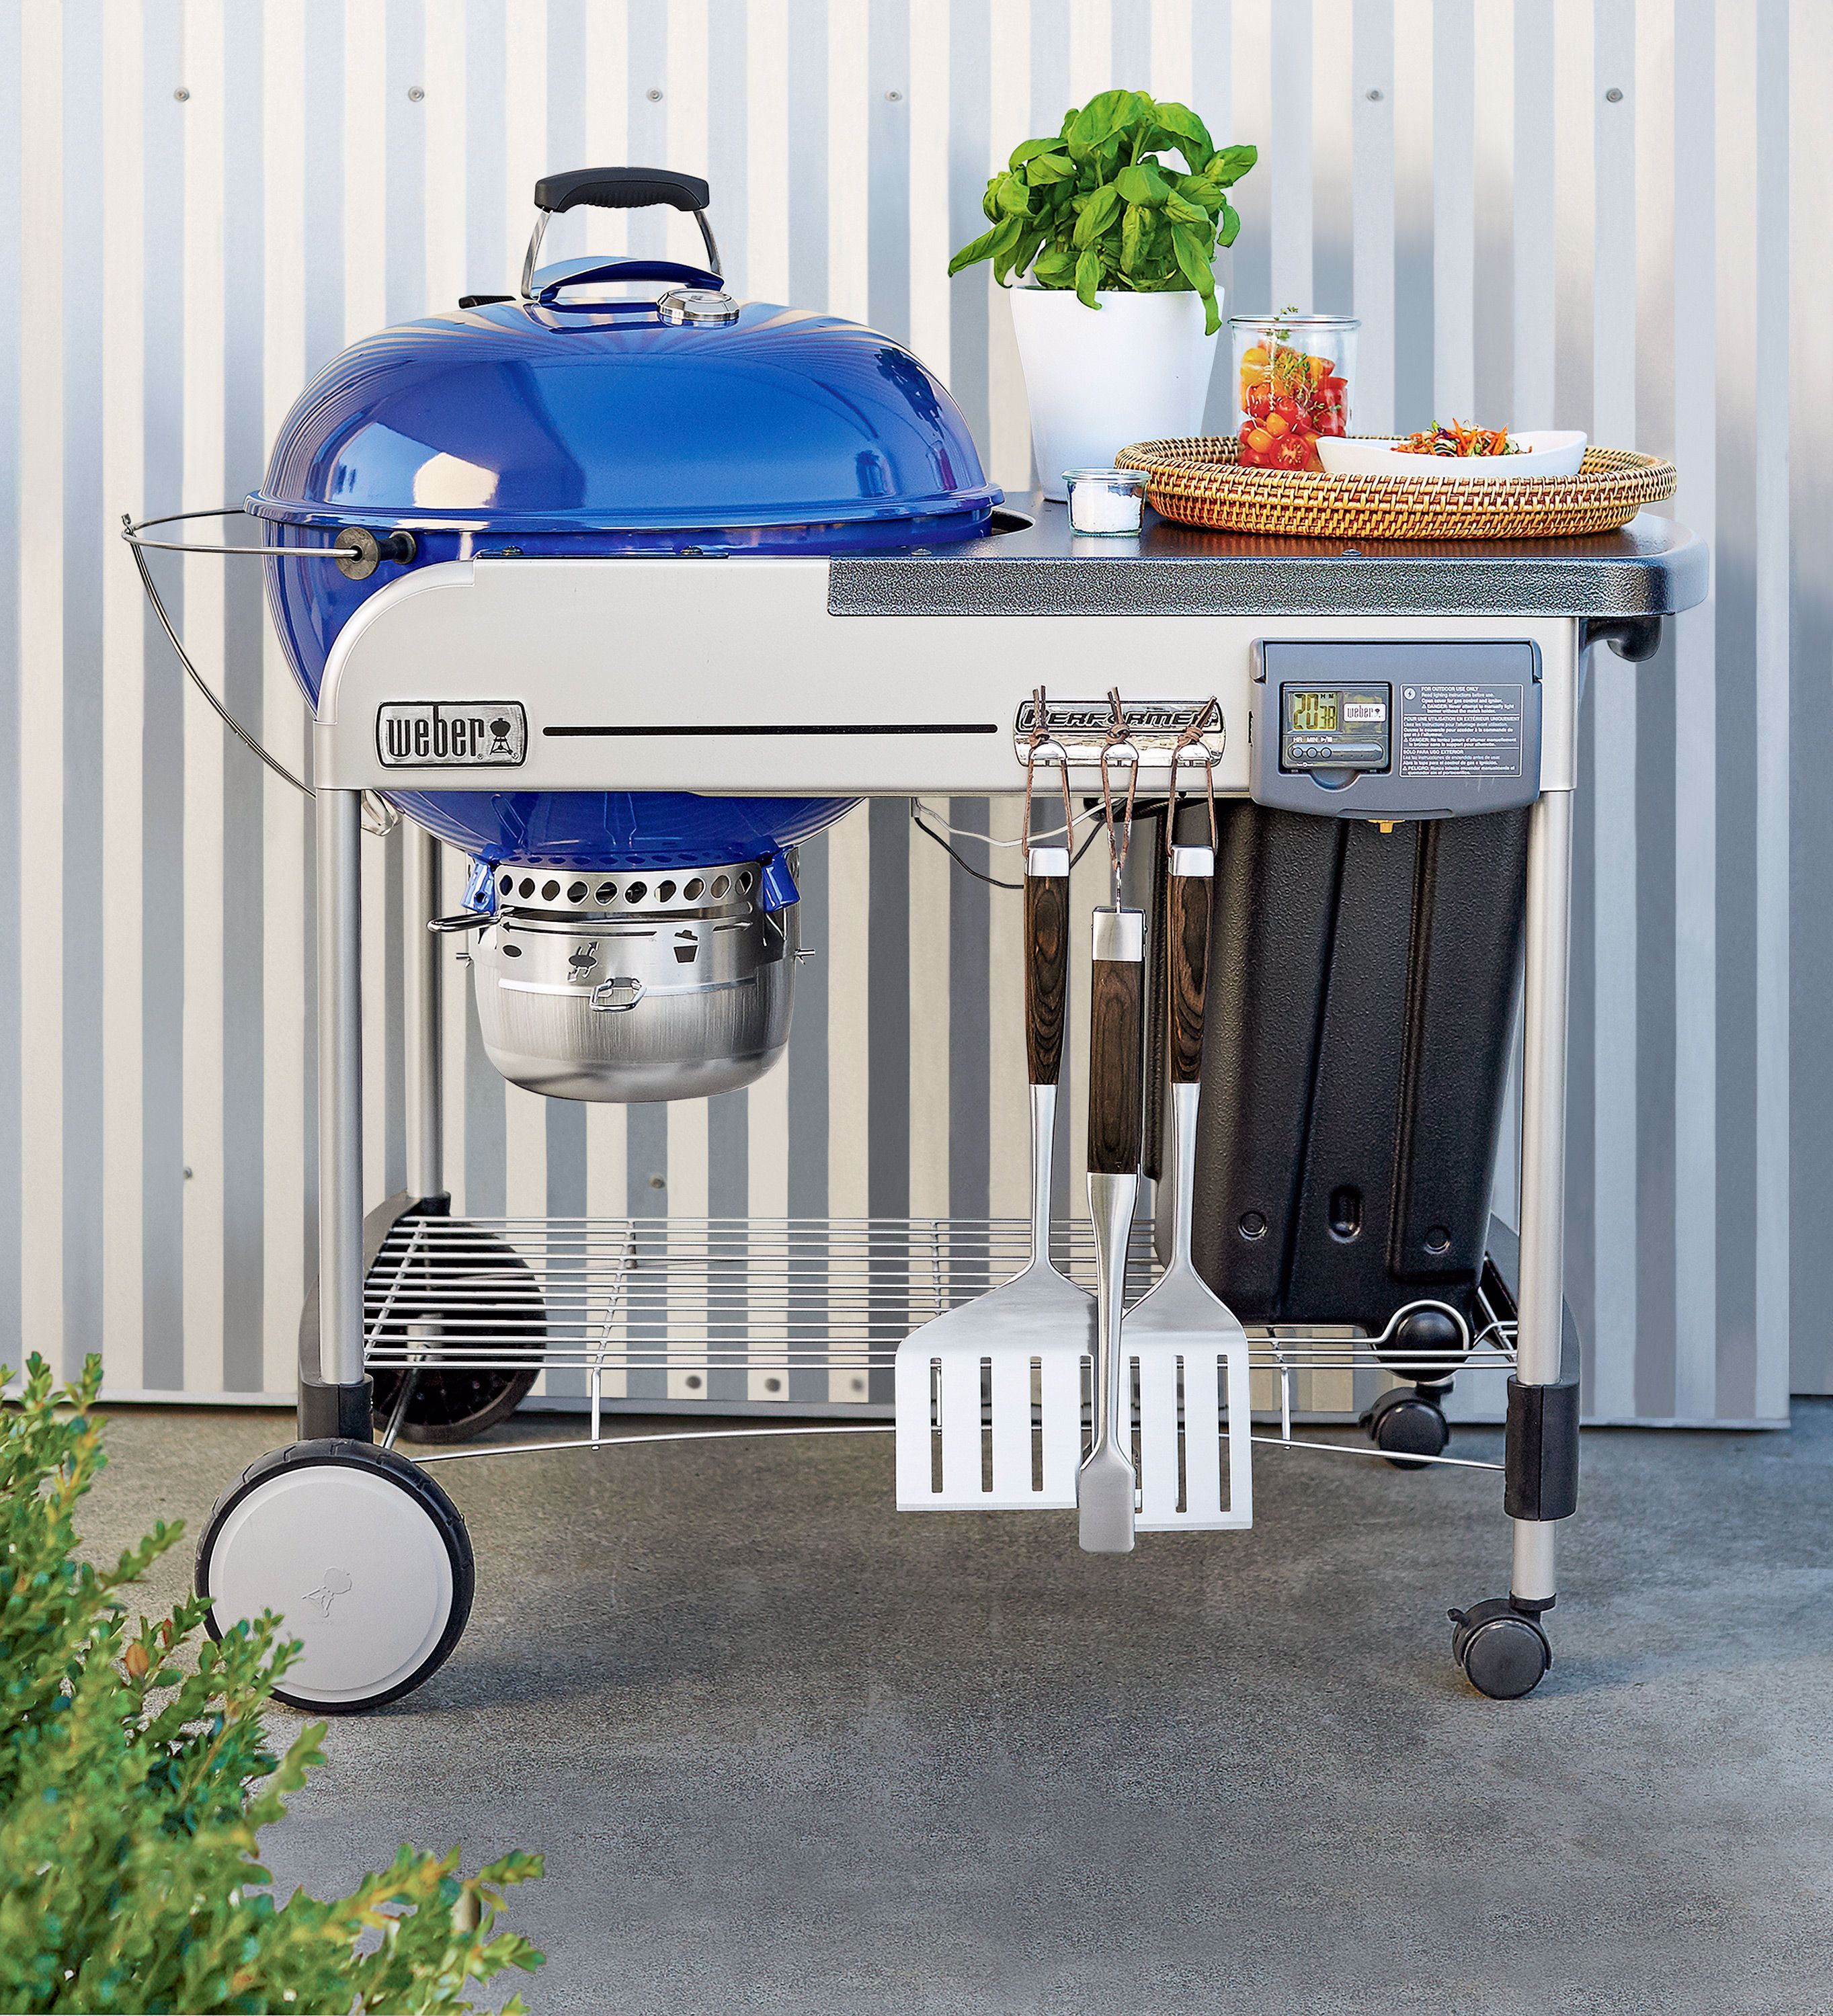 For Cooking Over Charcoal It Doesn T Get Much Simpler The Weber Blue Performer Deluxe Tricks Out The Classic Kett In 2020 Grill Accessories Charcoal Grill Grilling